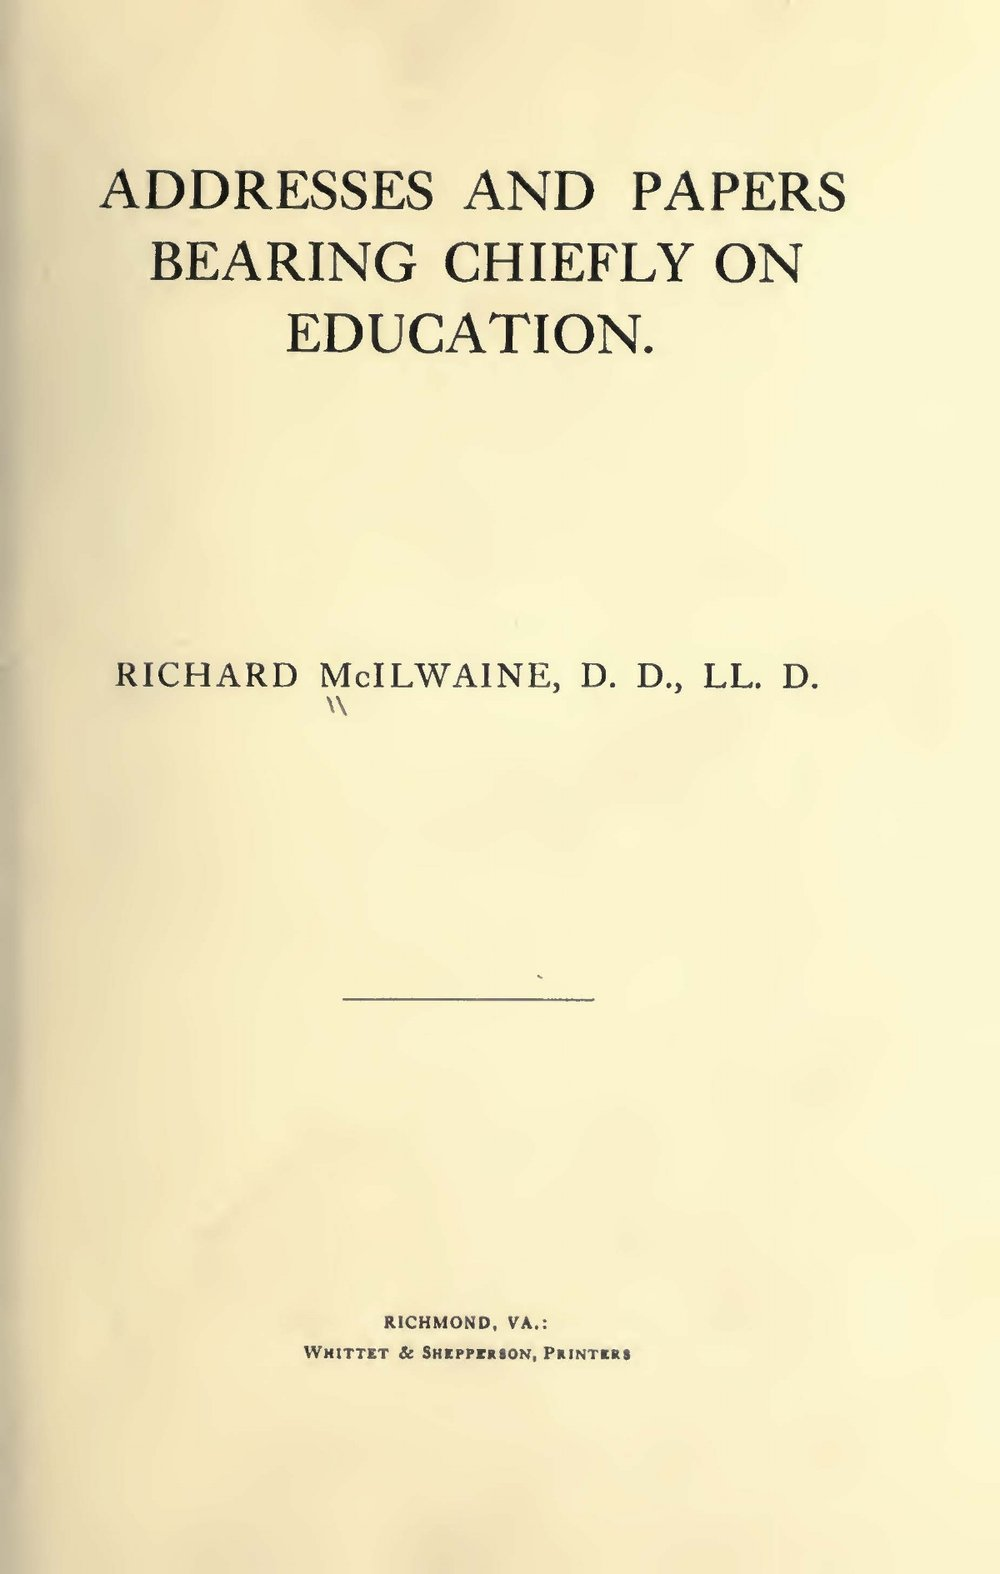 McIlwaine, Richard, Addresses and Papers Bearing Chiefly on Education Title Page.jpg